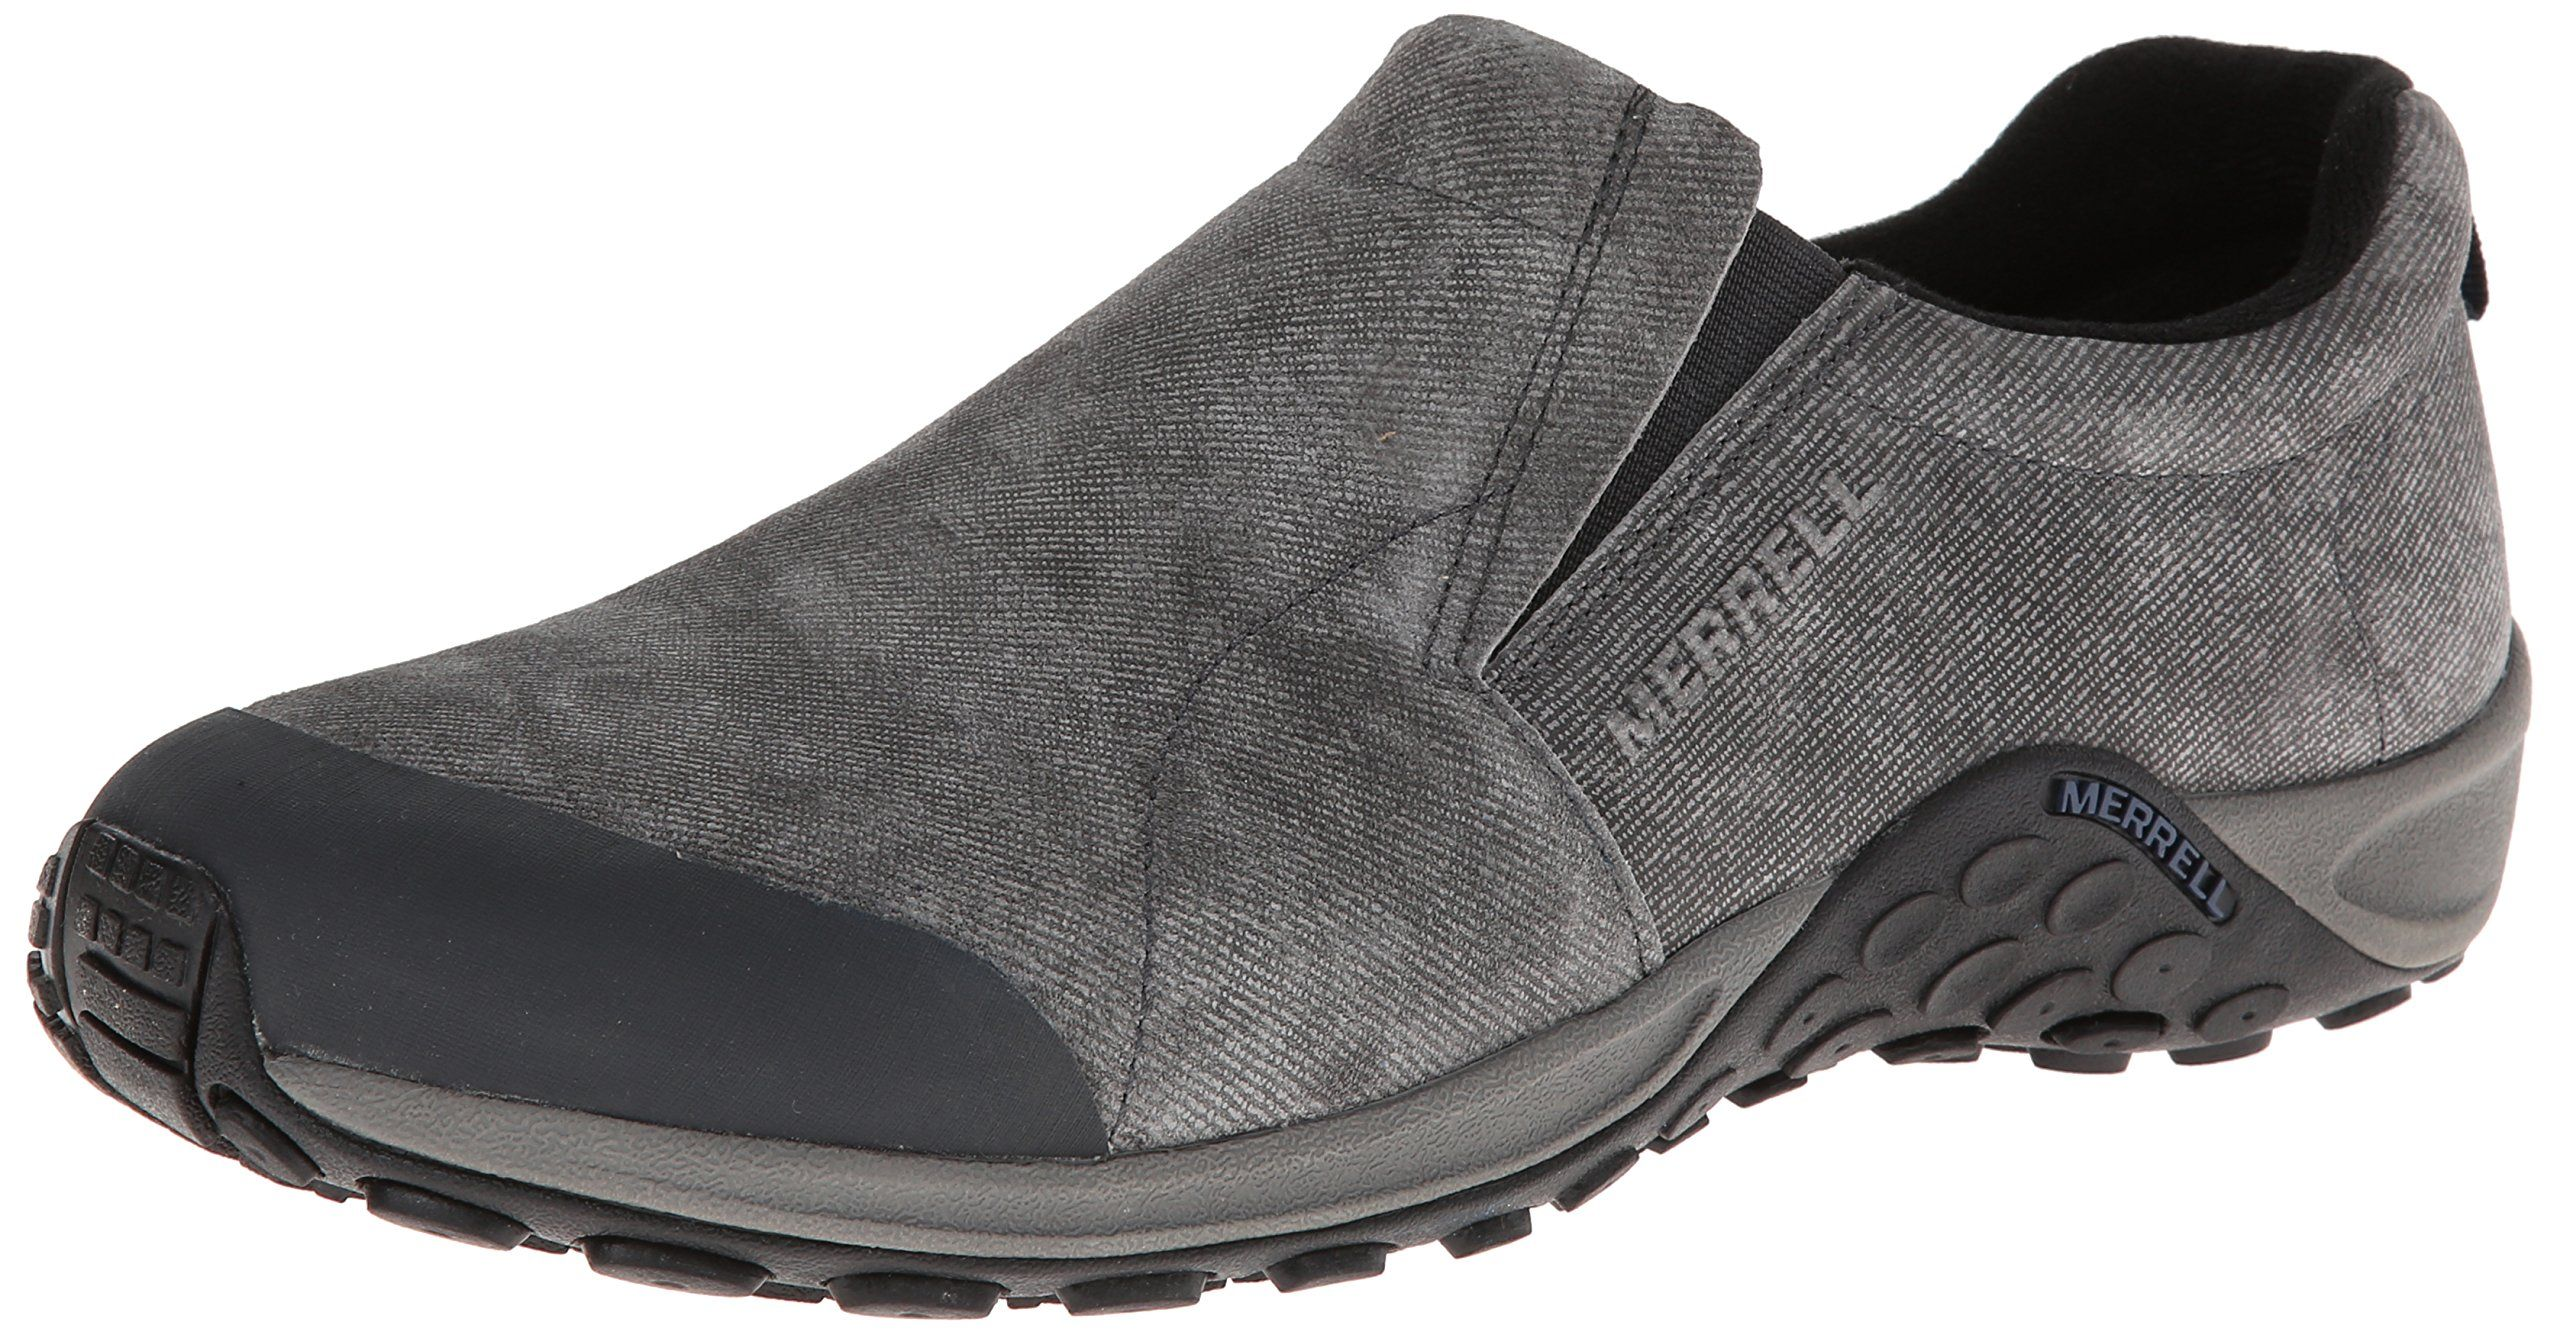 Amazon.com: Merrell Men's Jungle Moc Touch Slip-On Shoe: Loafers Shoes